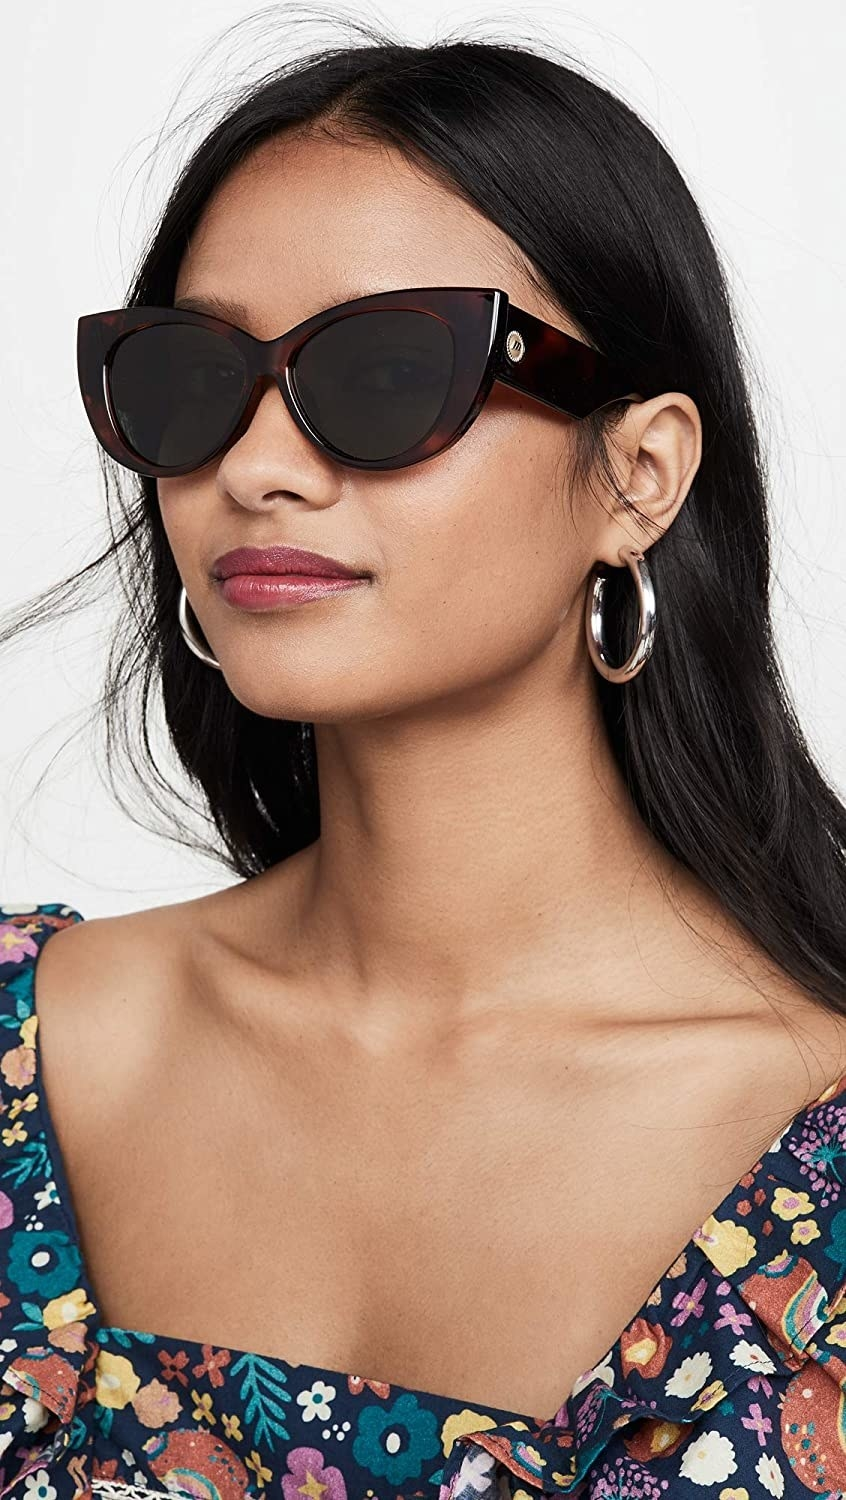 Model wearing the sunglasses with tortoise shell frame and green lense